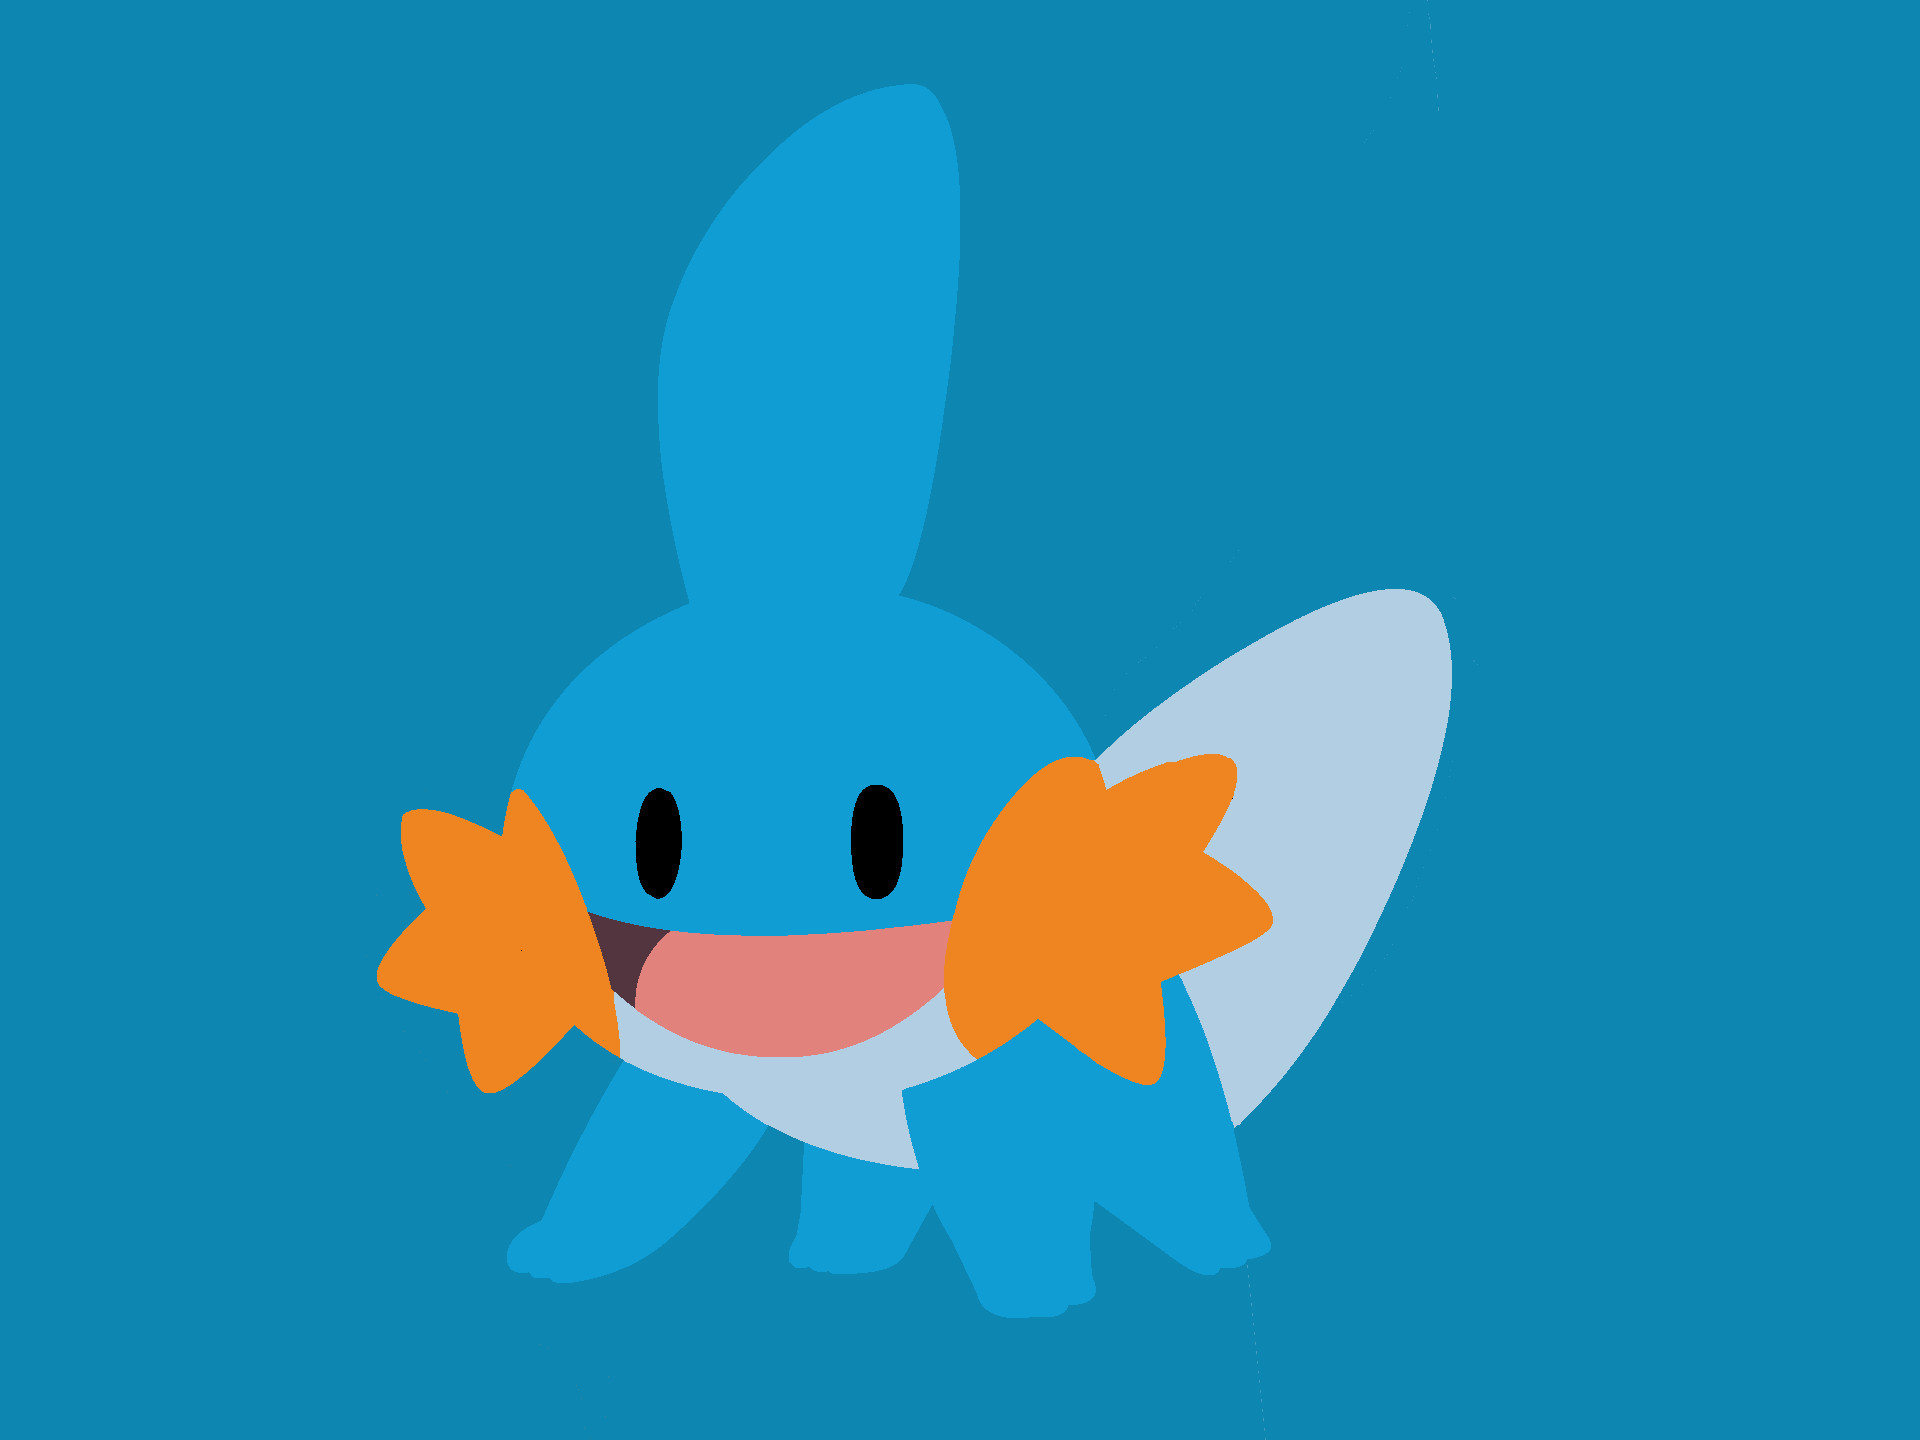 Mudkip Wallpapers 60 images 1920x1440